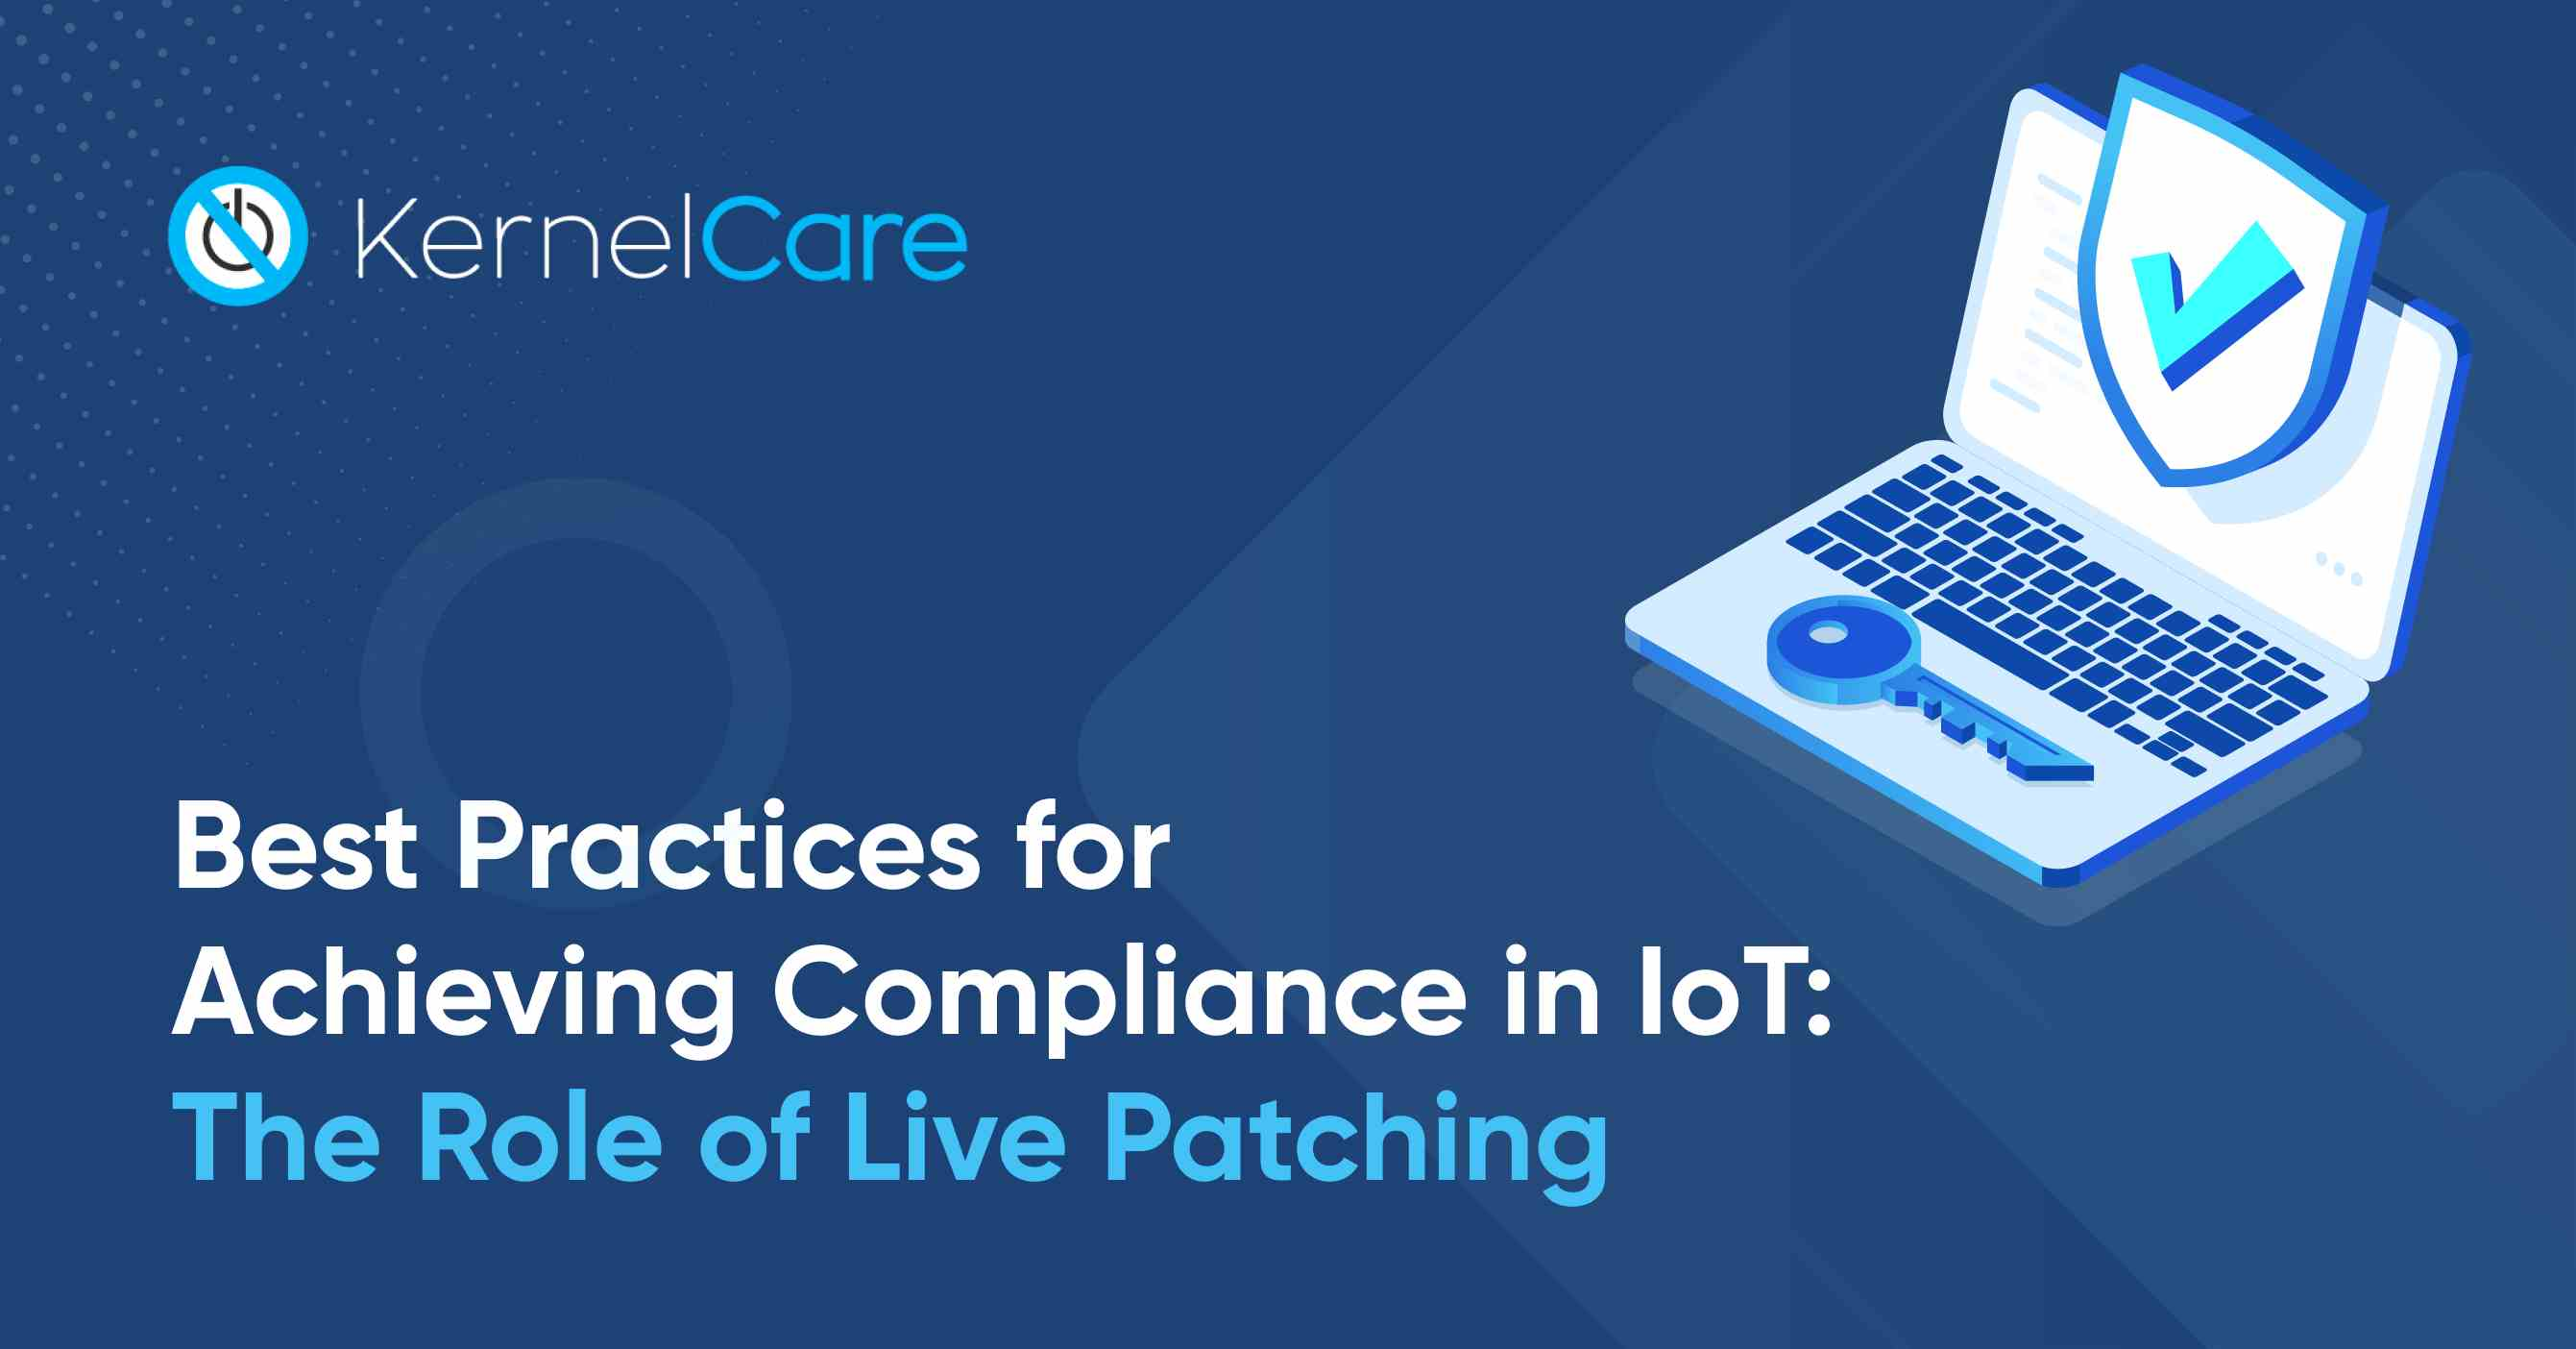 Best Practices for Achieving Compliance in IoT: The Role of Live Patching